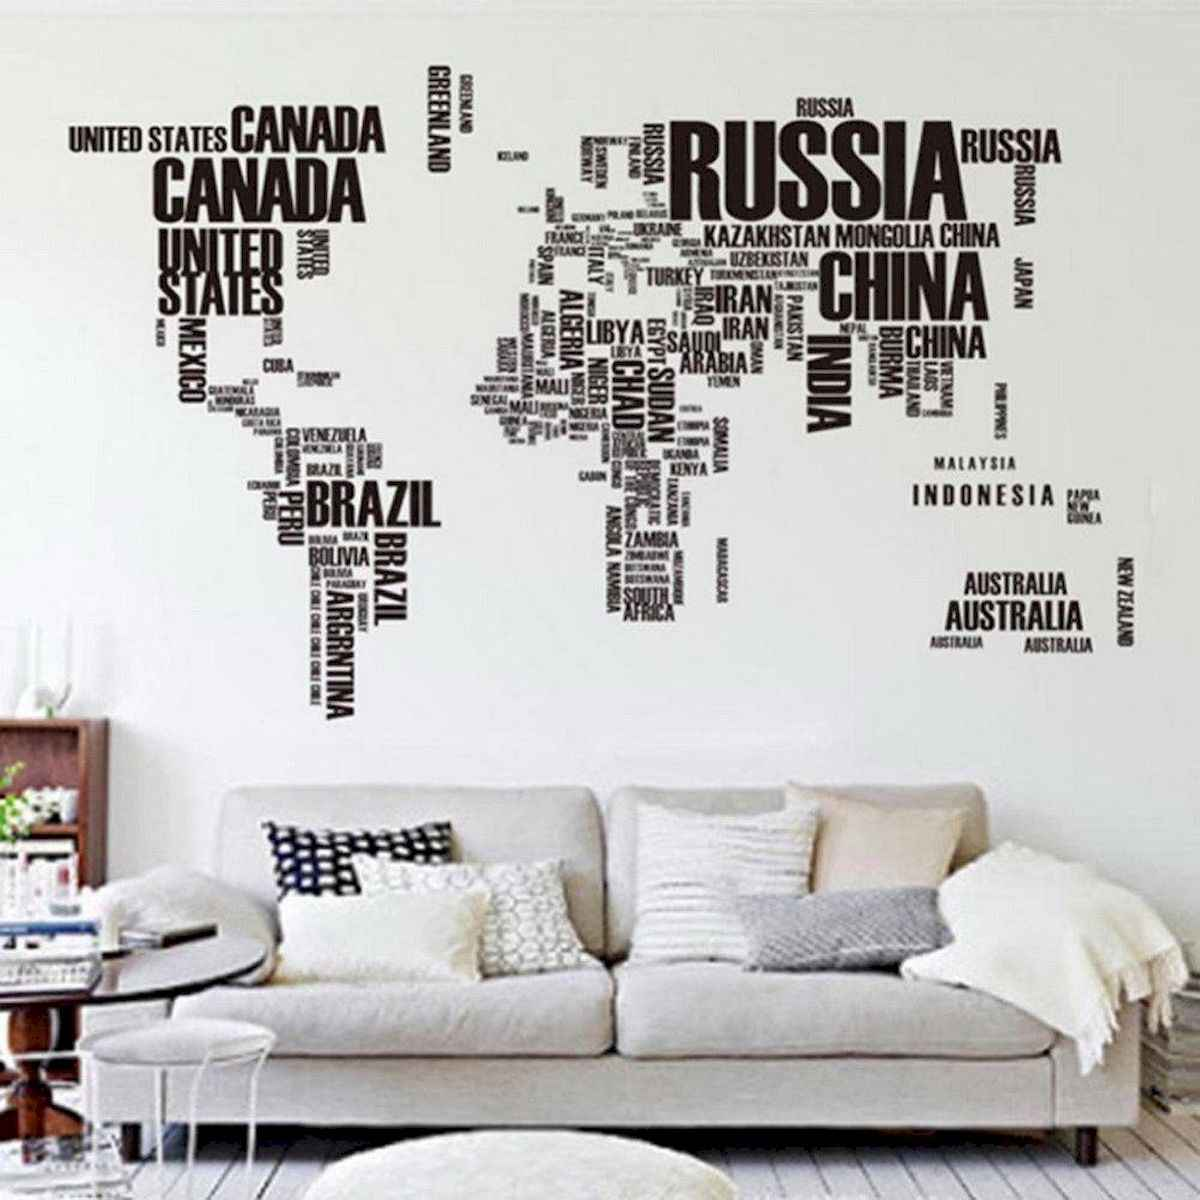 Wall Prints For Living Room Australia 60 Most Elegant Wall Art Ideas For Living Room Makeover 14